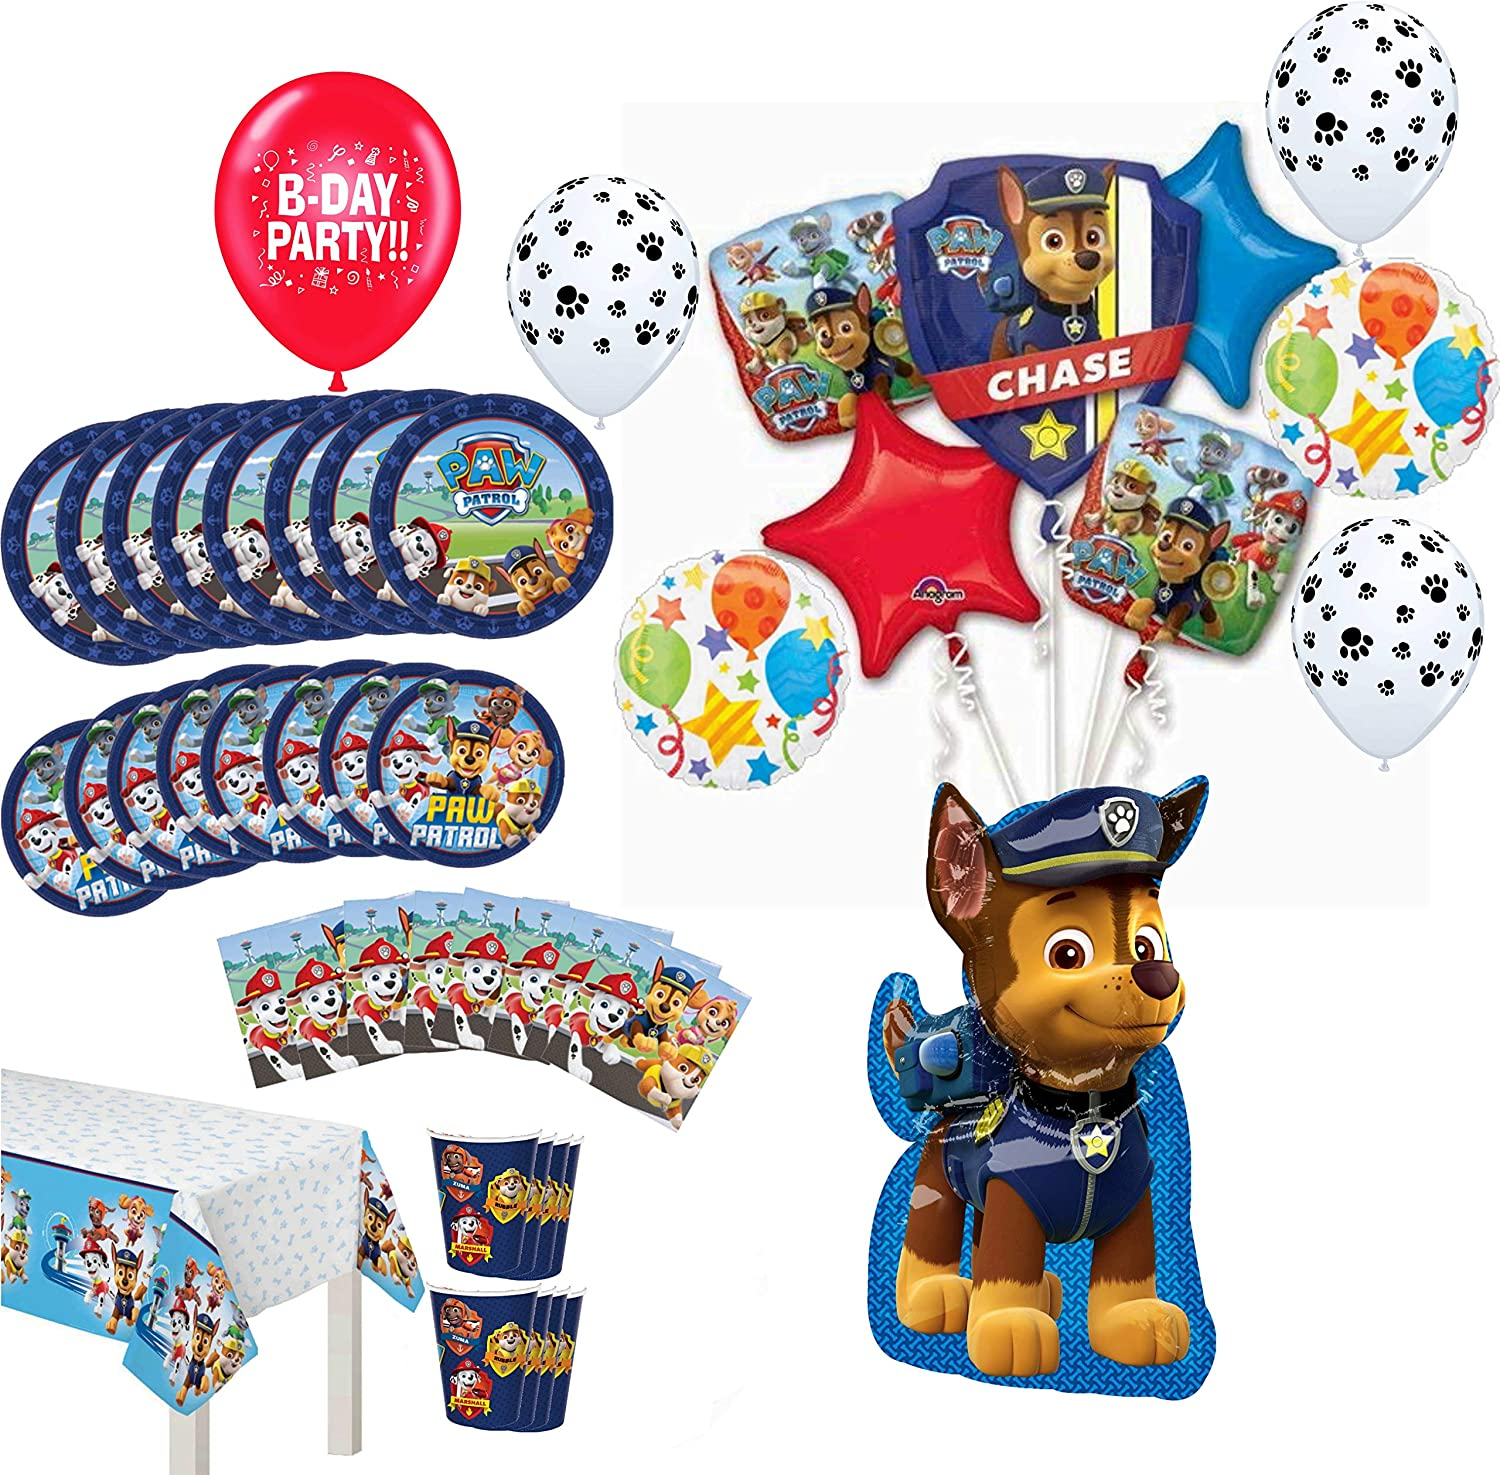 Paw Patrol Party Supplies Birthday 8 Guest Table Decorations and Chase Balloon Bouquet